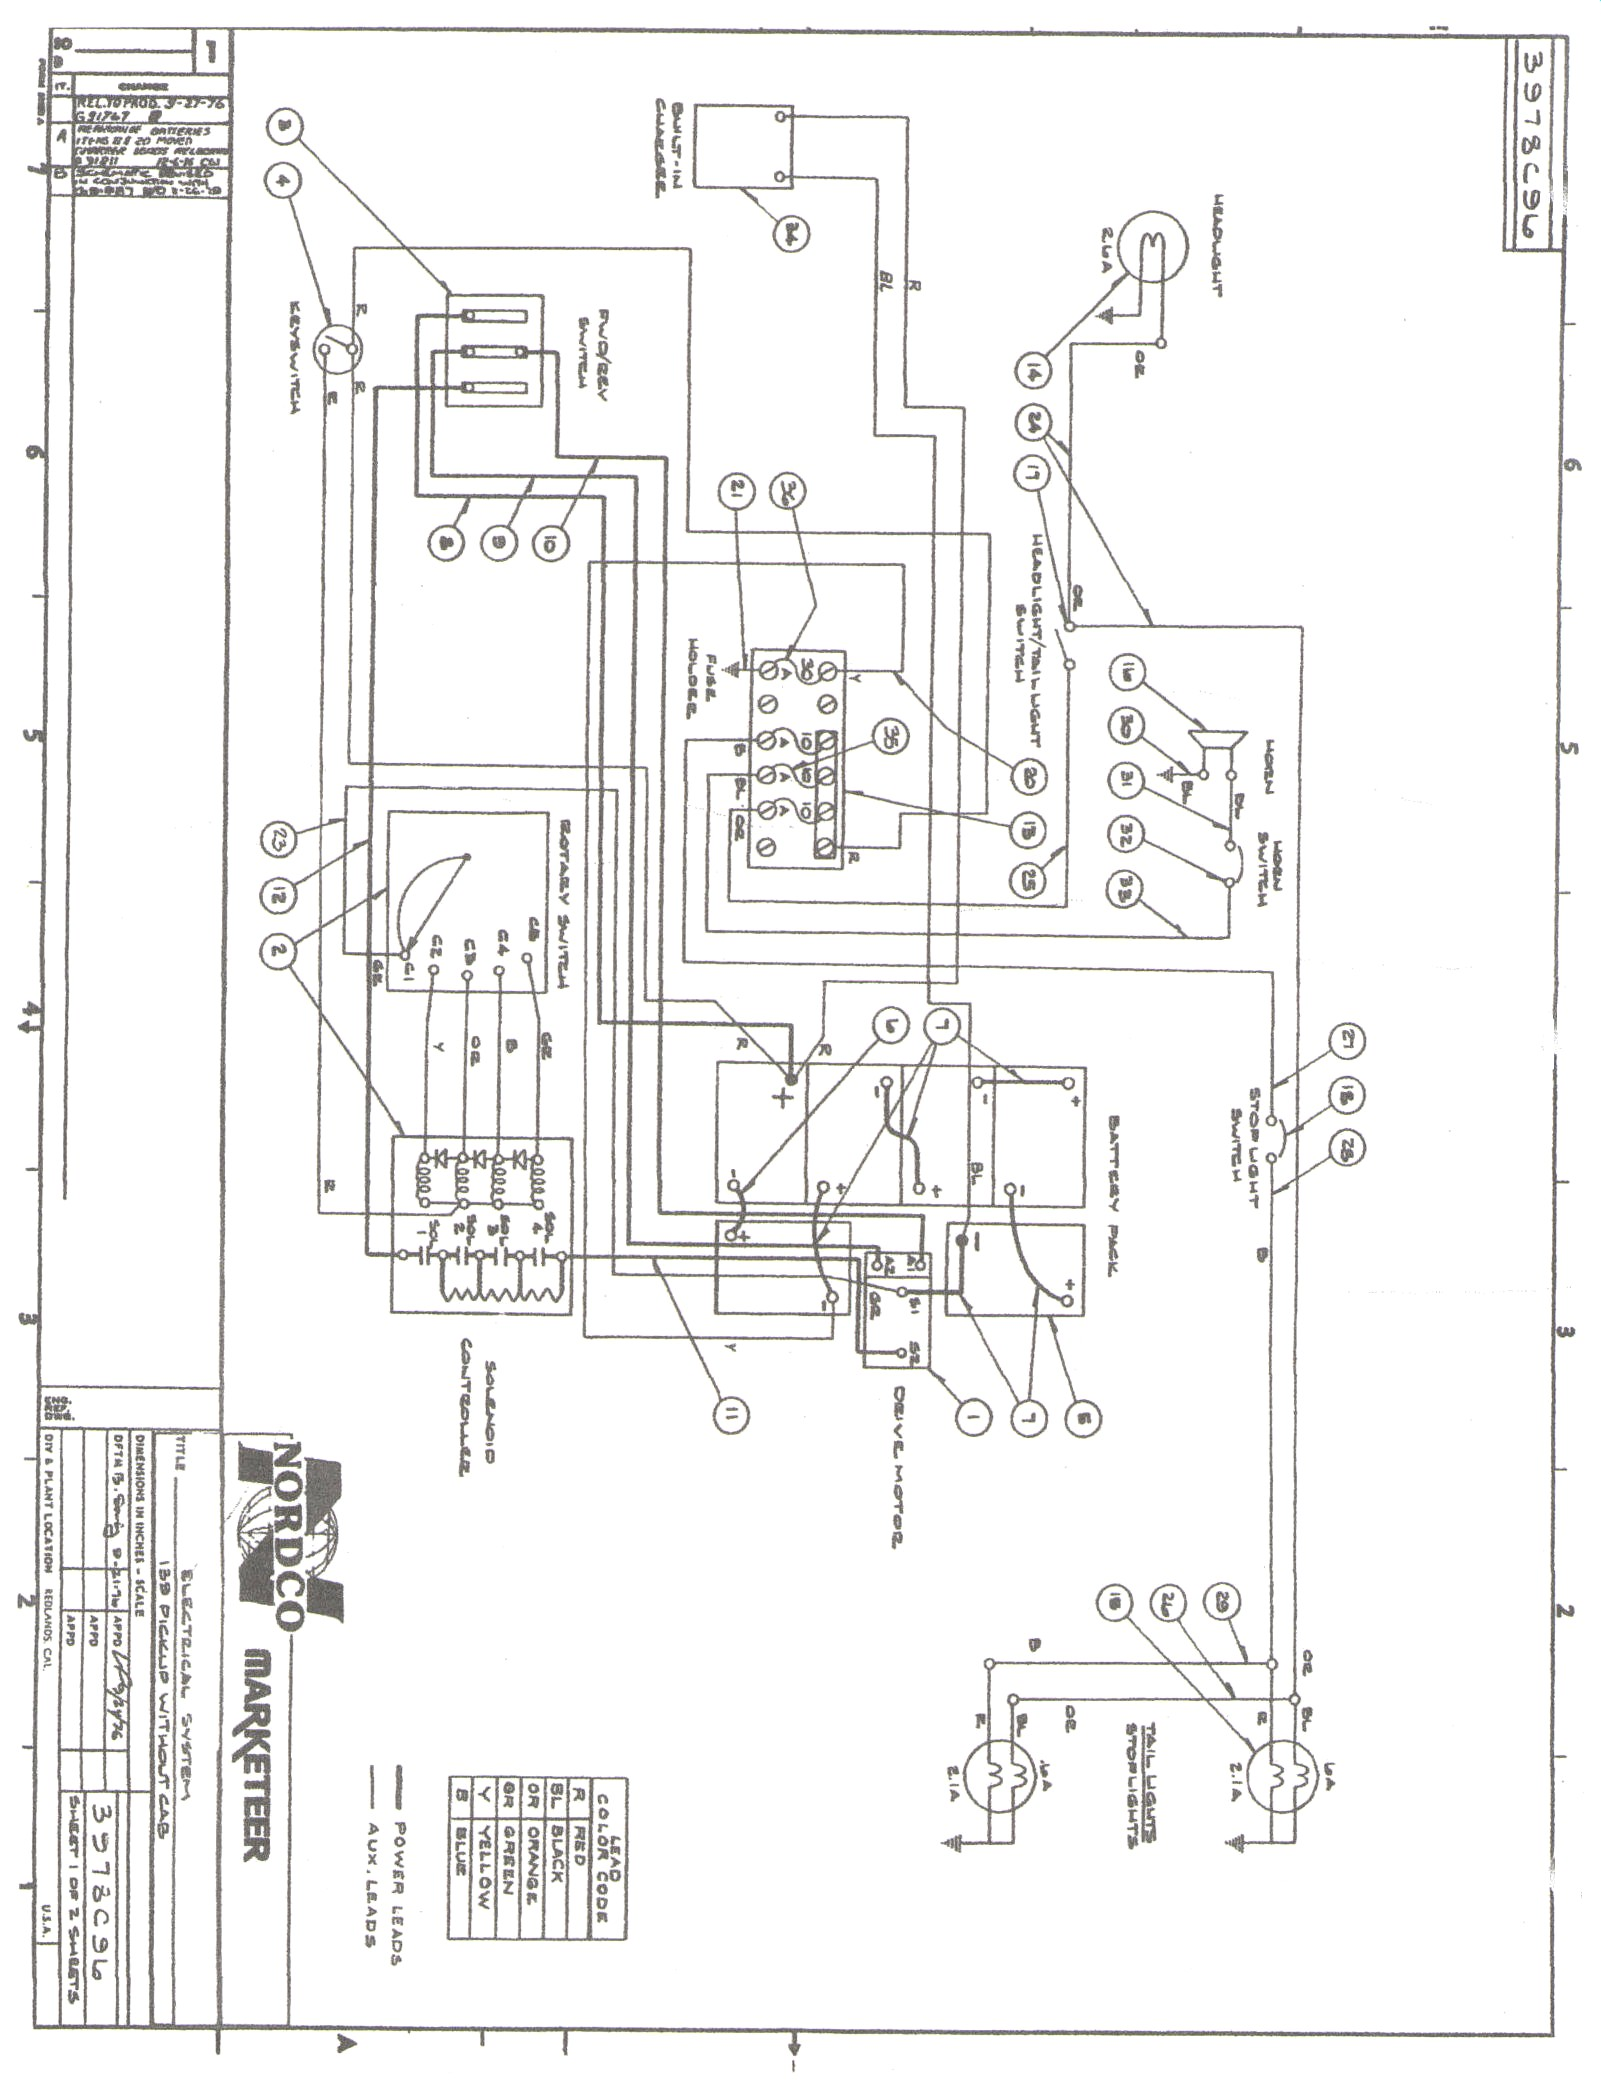 Wiring Diagram For Ez Go Textron 27647 G01